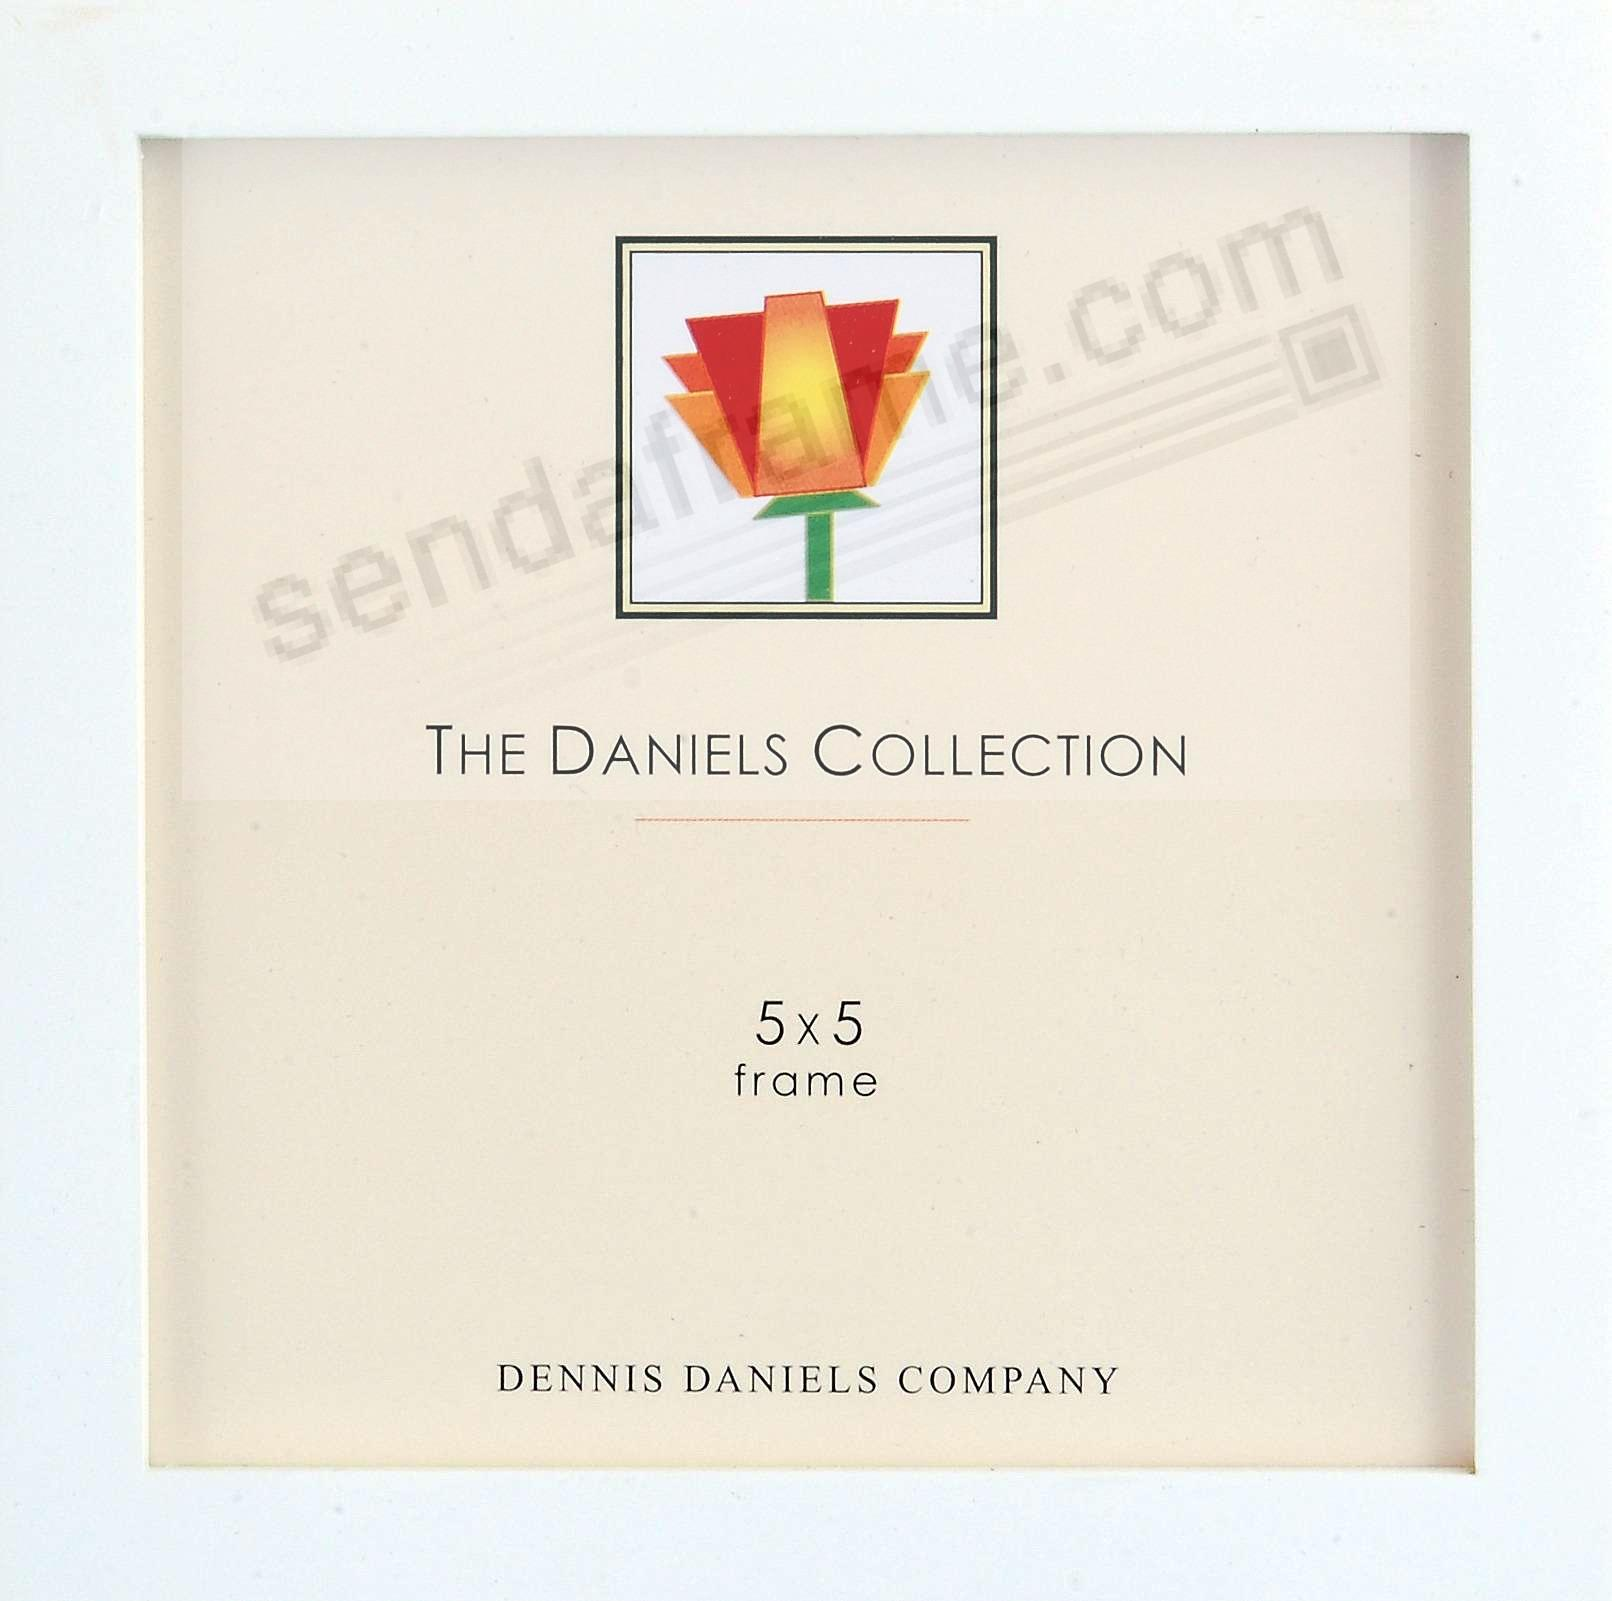 The Original DANIELS W41: Square Corner GALLERY WOODS Bright White finish square 5x5 frame by Dennis Daniels®